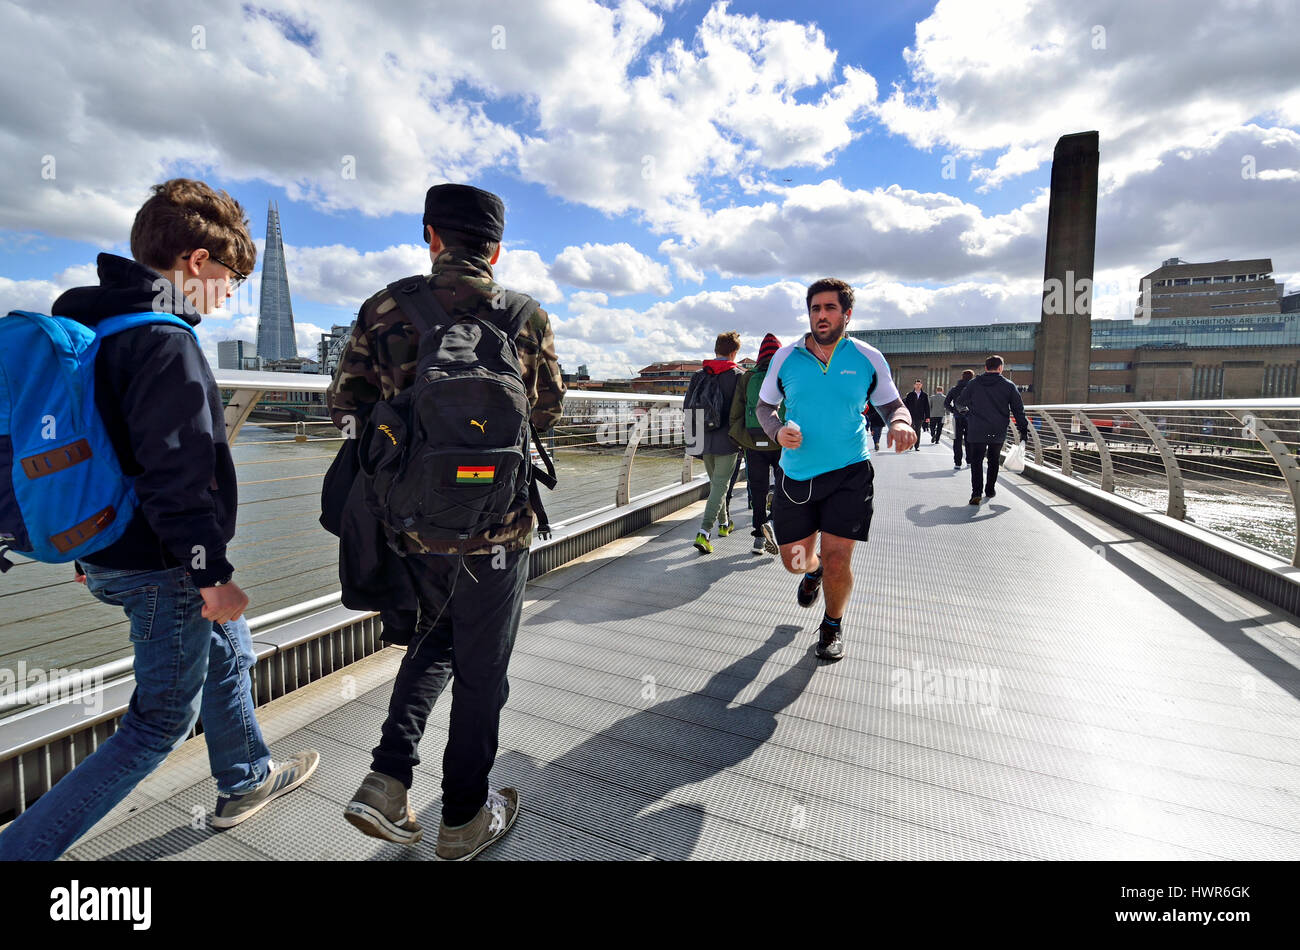 London, England, UK. Runners on the Millennium Bridge, running from Tate Modern northwards - Stock Image